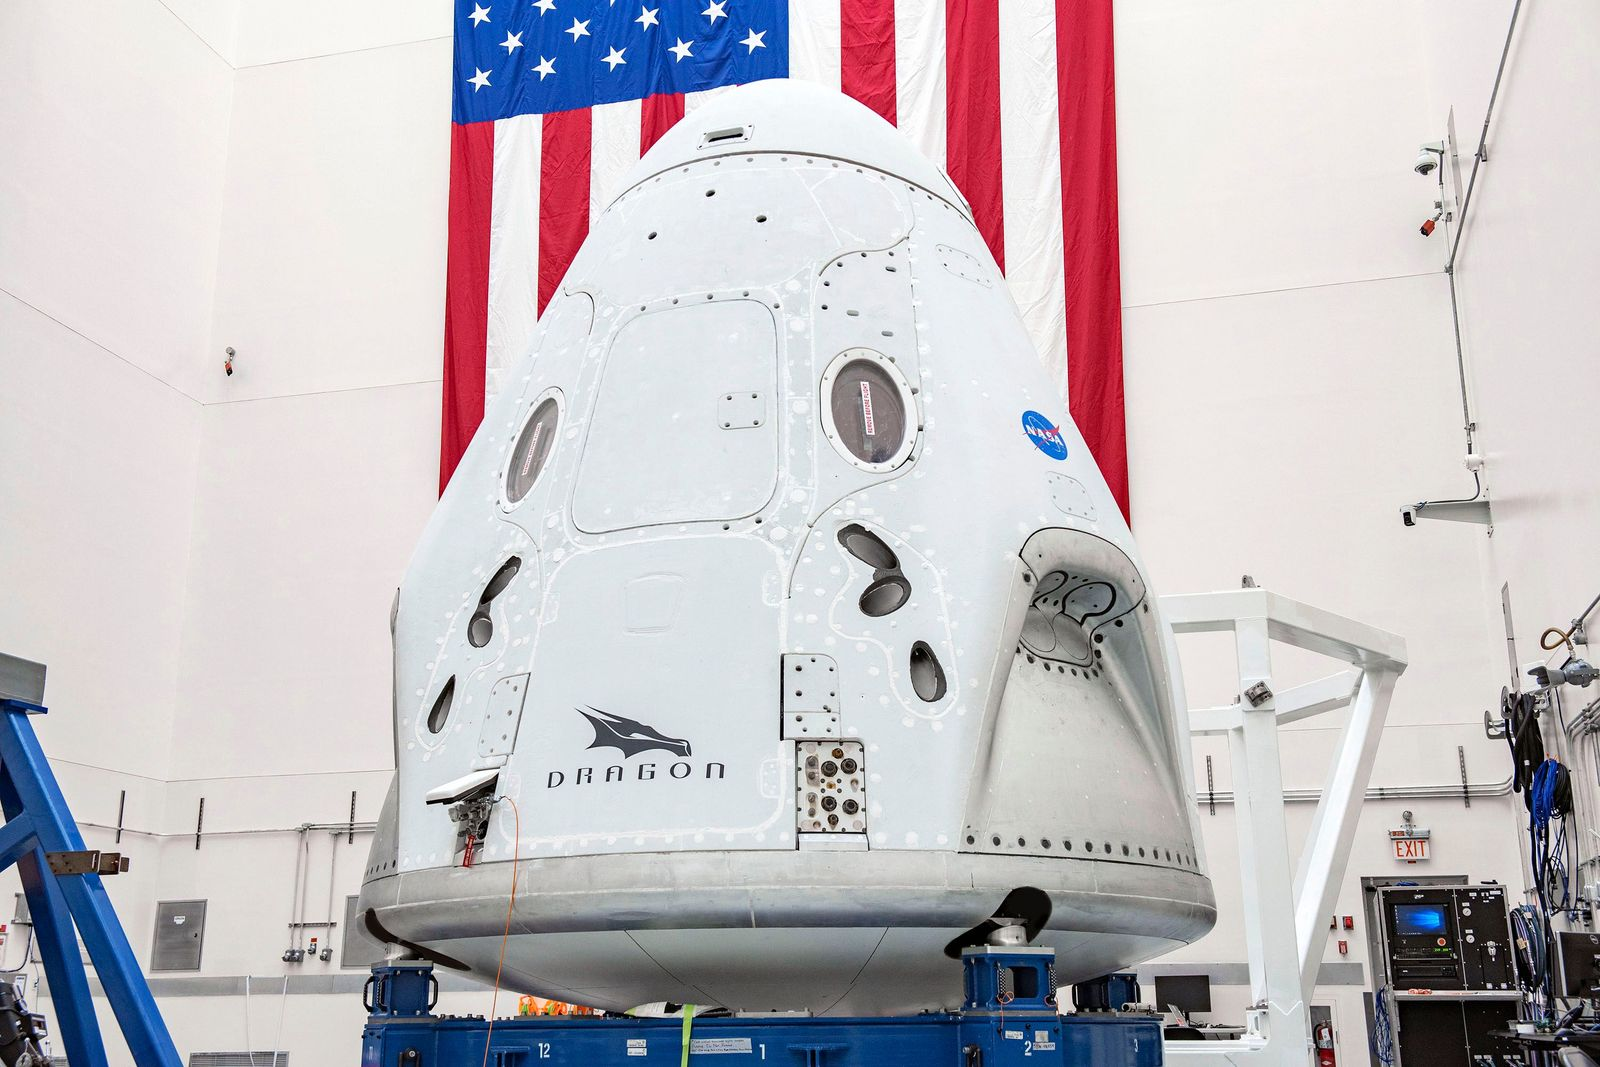 NASA's Commercial Crew Program: crew flight set to launch from US soil on 27 May, Cape Canaveral Air Force Station, USA - 11 Apr 2020